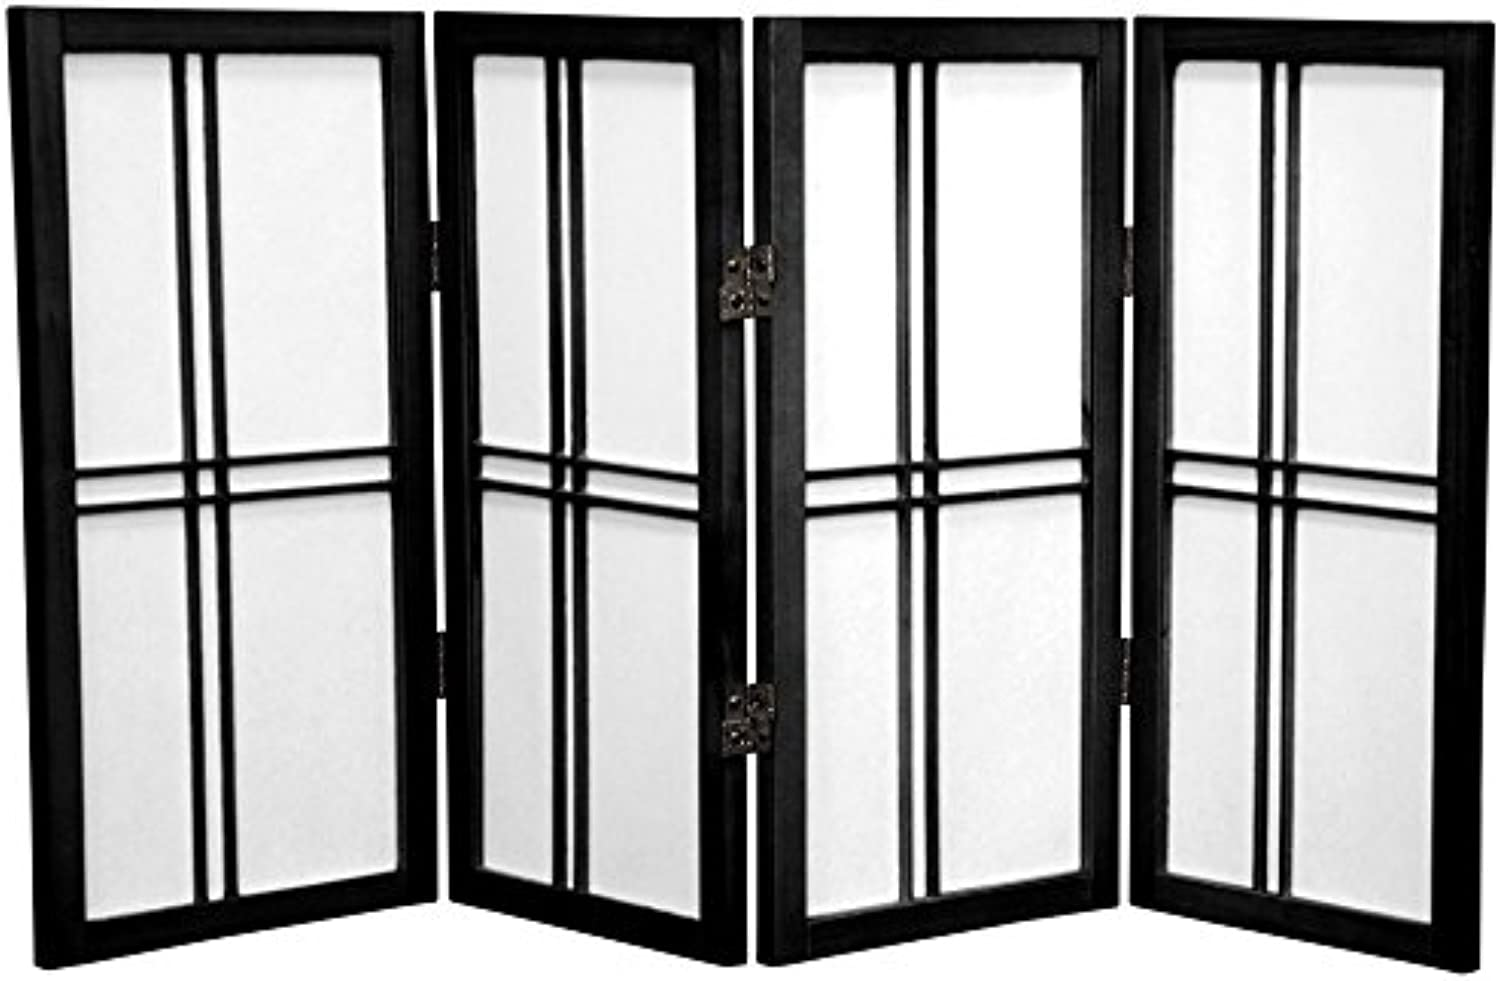 Oriental Furniture Table Top Room Dividers, 2-Feet Double Cross Japanese Style Shoji Screen, 4 Panel Black